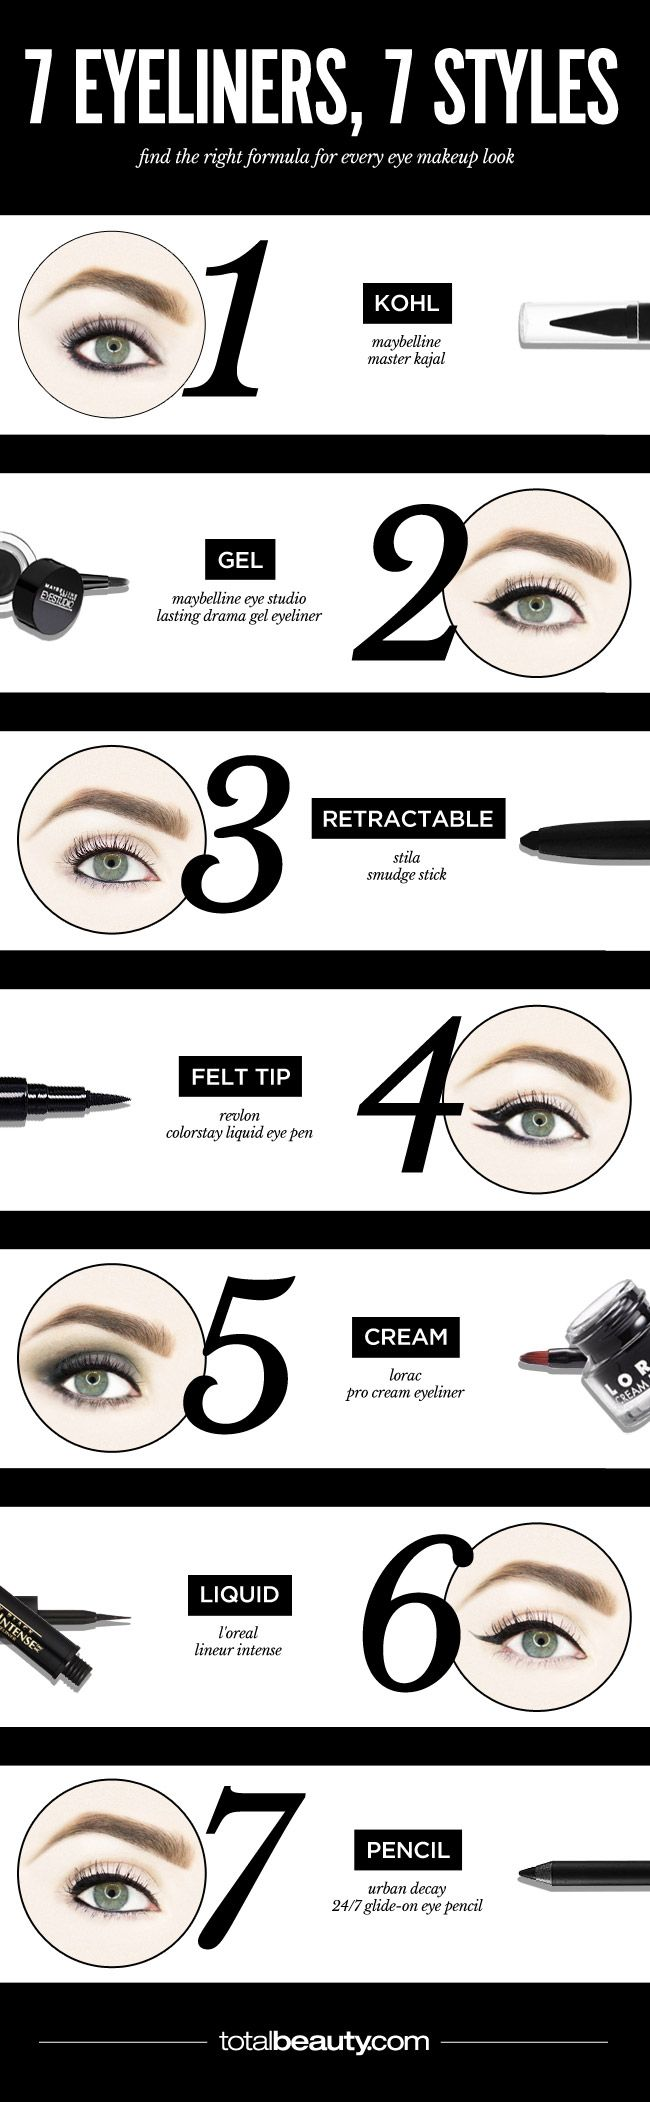 The Best Eyeliner for Your Cat Eye, Rocker Smudge or Graphic Flick ...